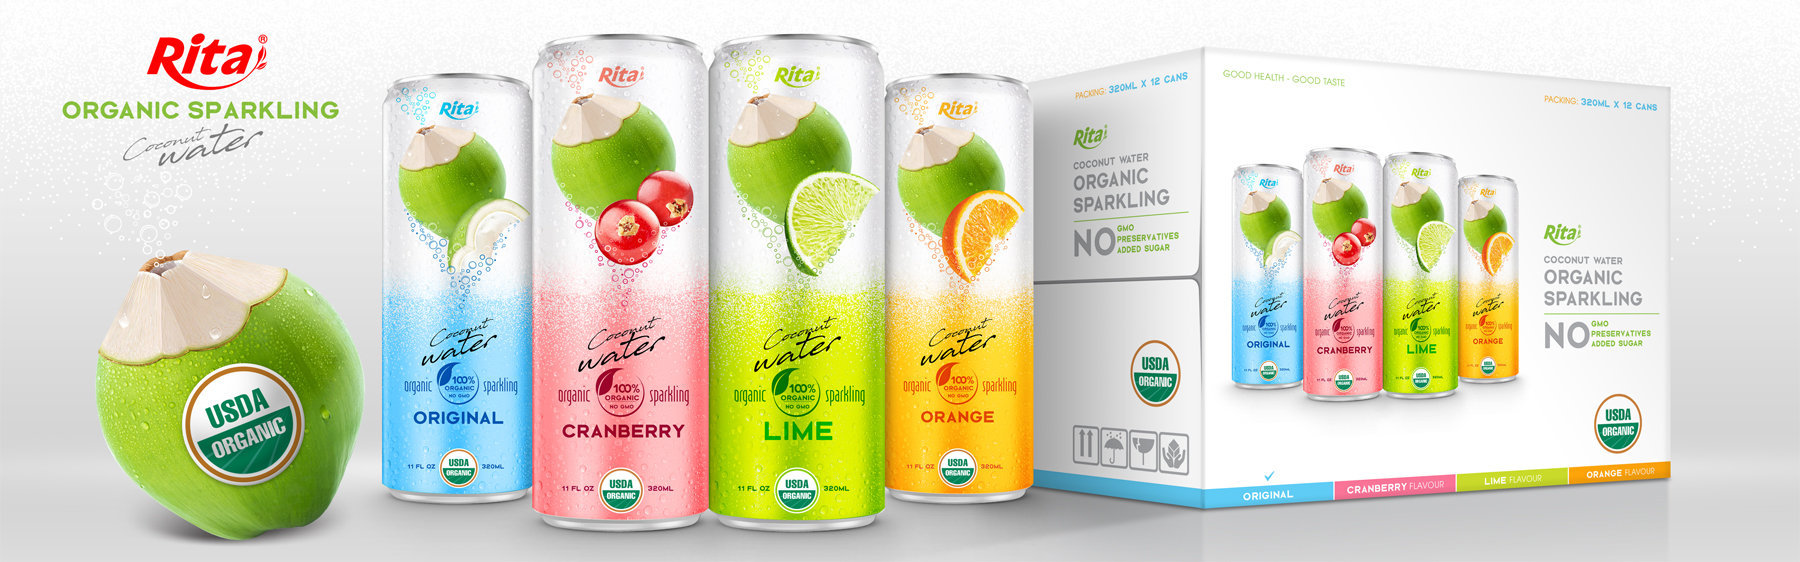 Coco Organic Sparkling with lime in 320ml can